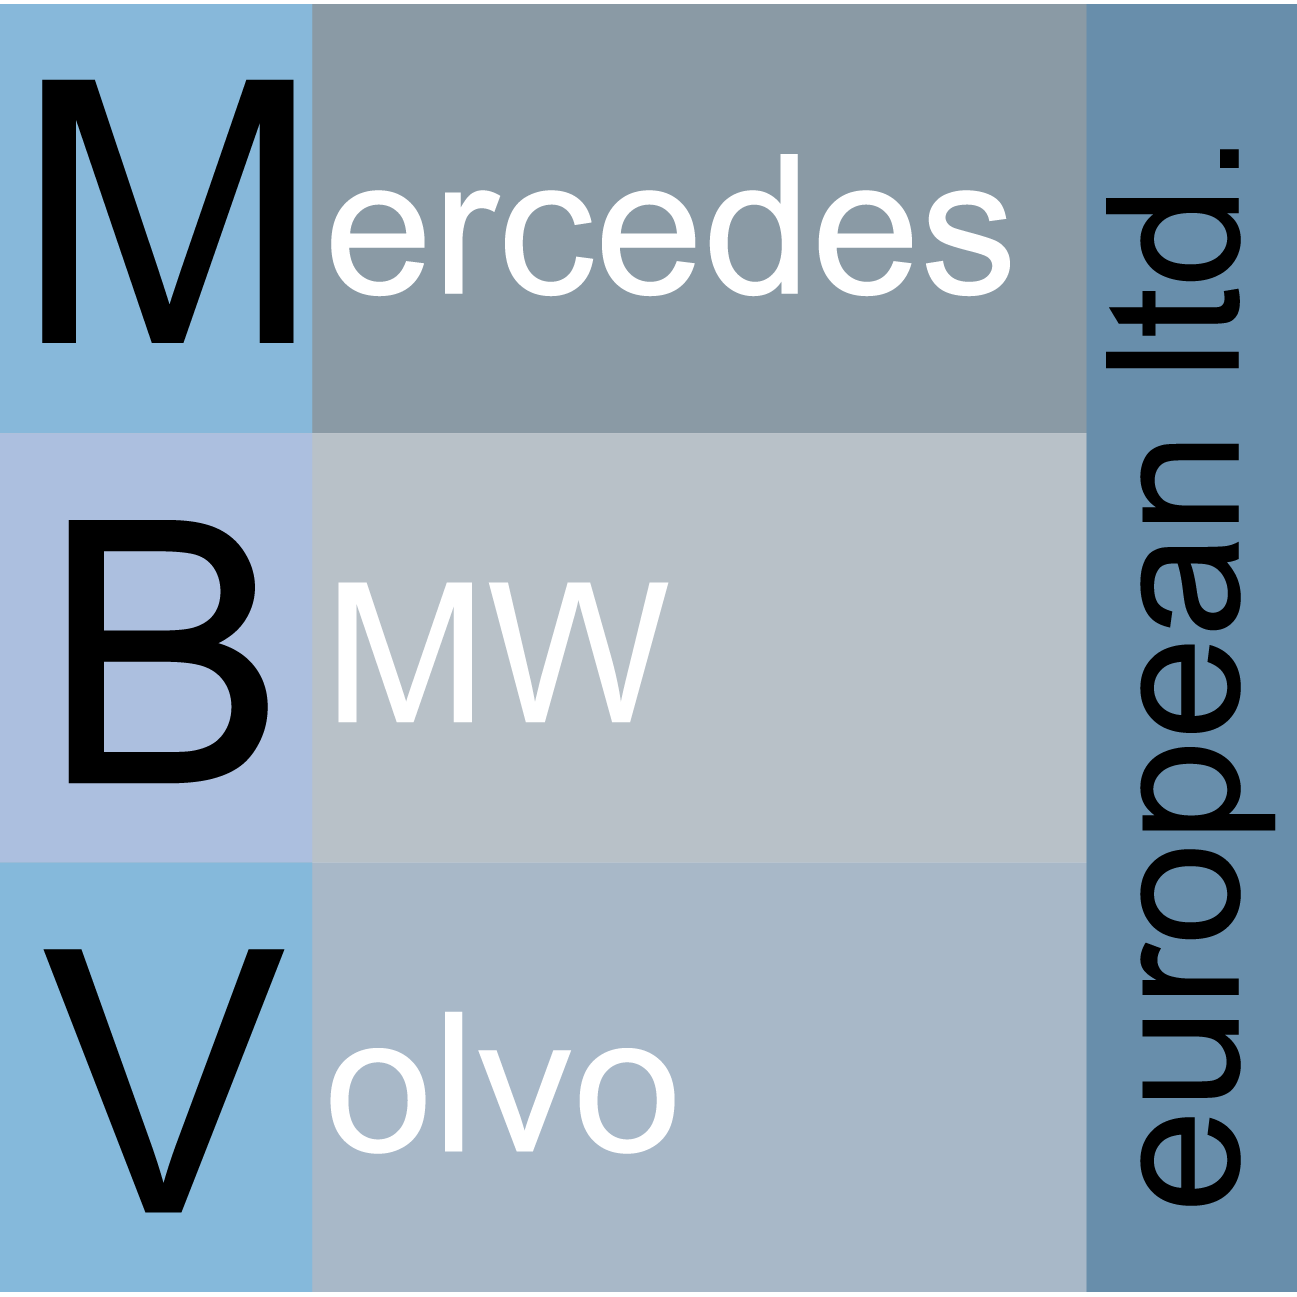 MBV European Ltd